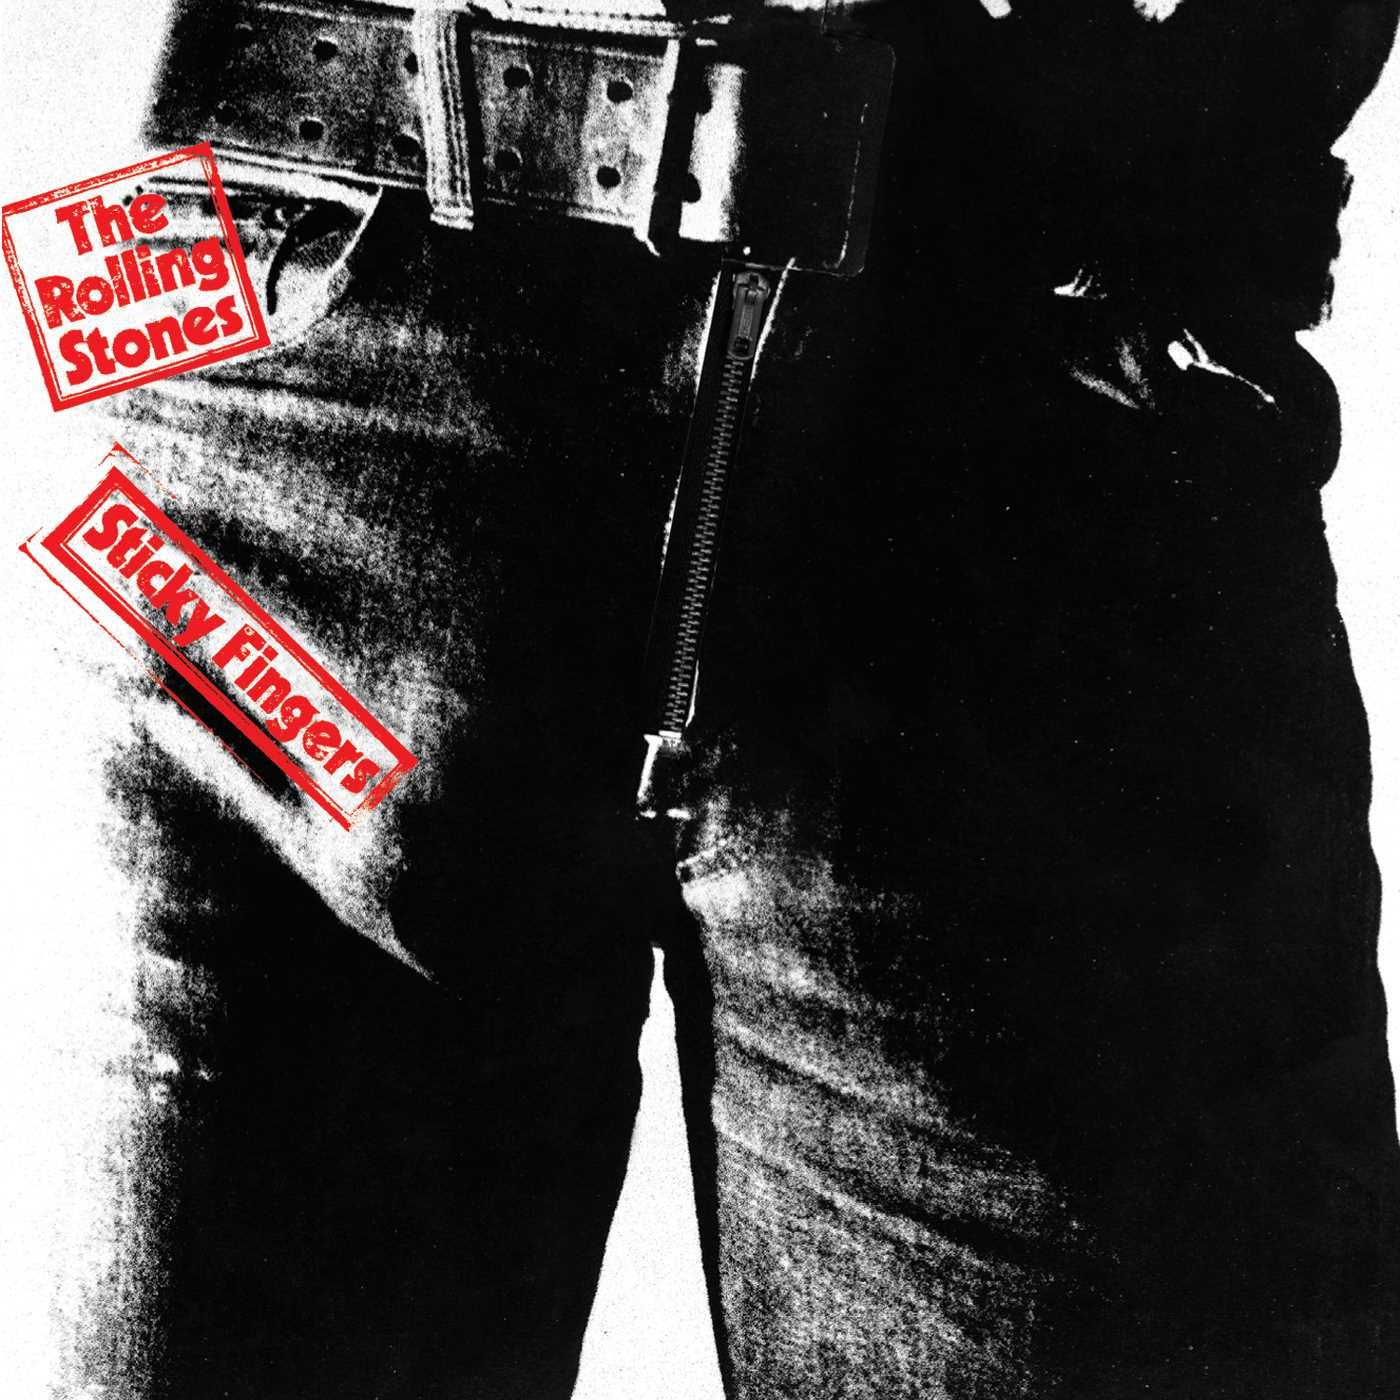 The Rolling Stones - Sticky Fingers - Amazon.com Music